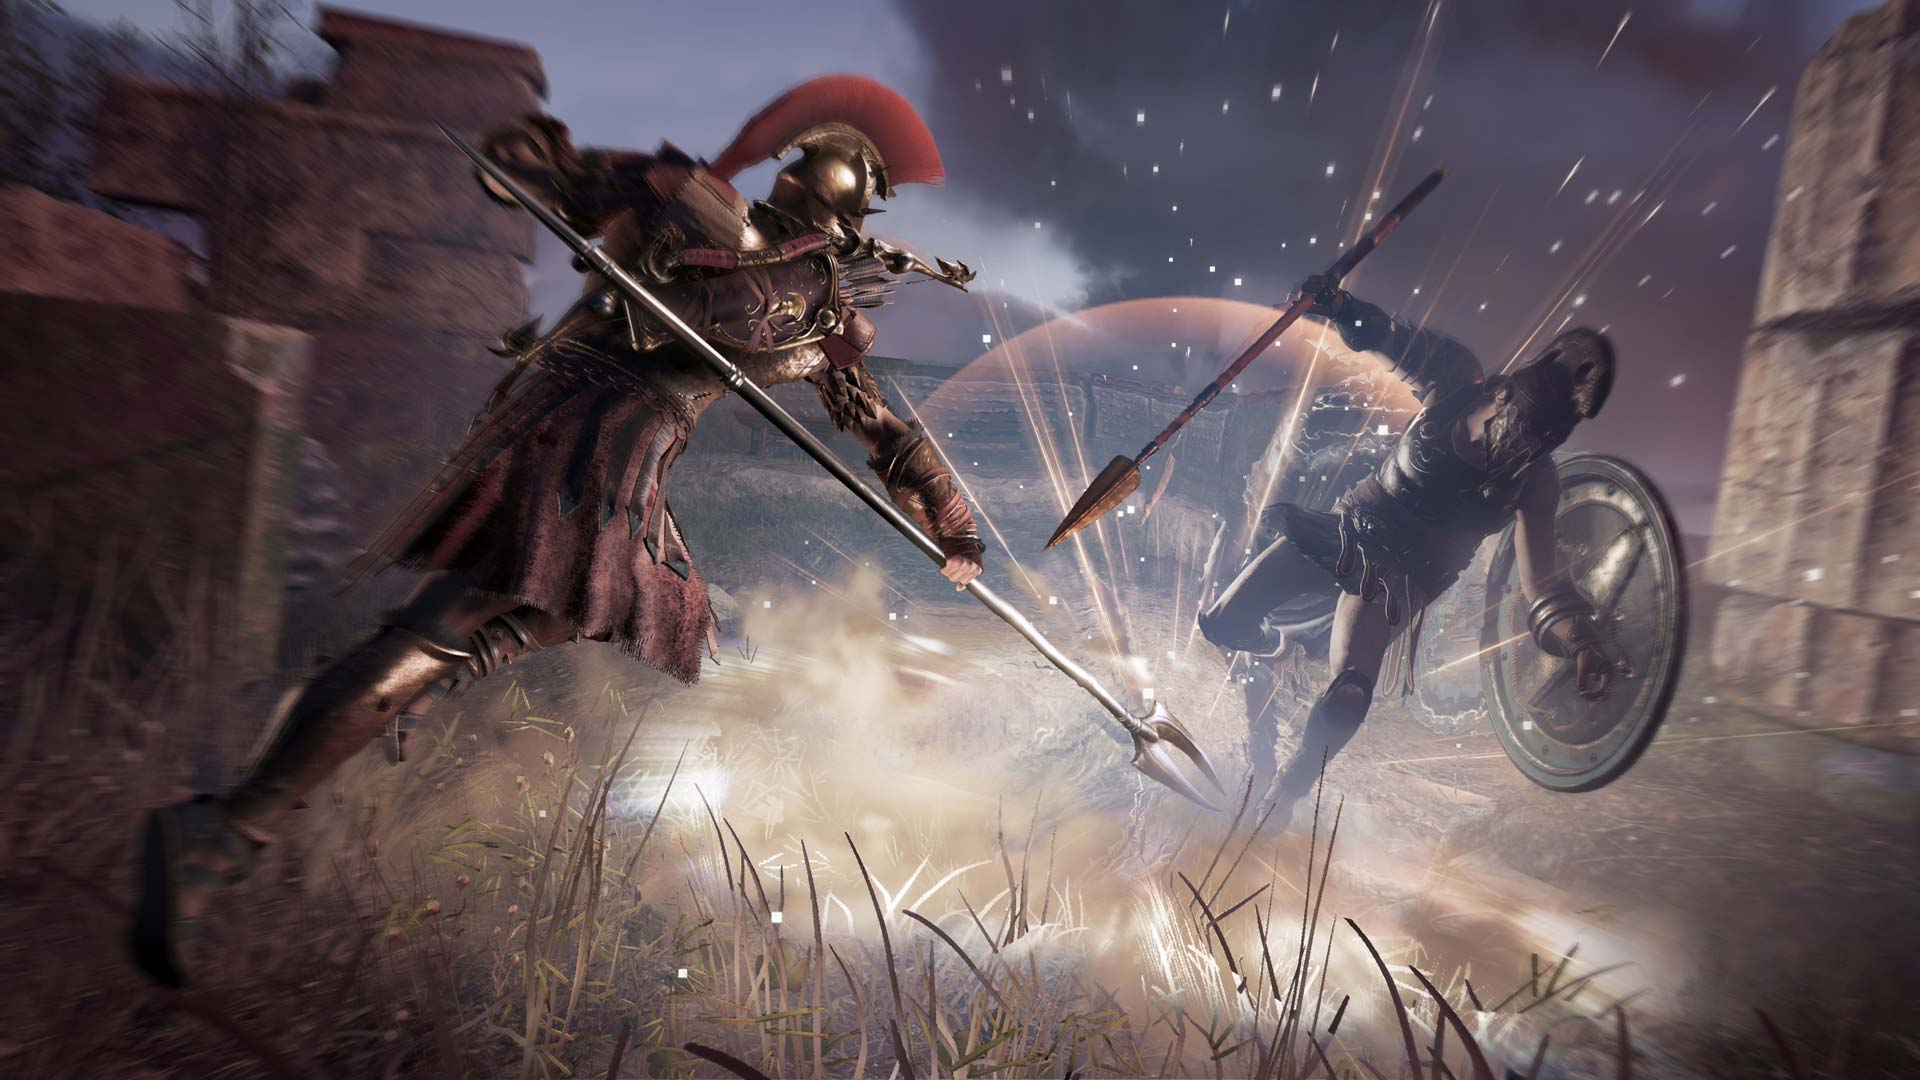 The combat system of Assassin's Creed Odyssey.